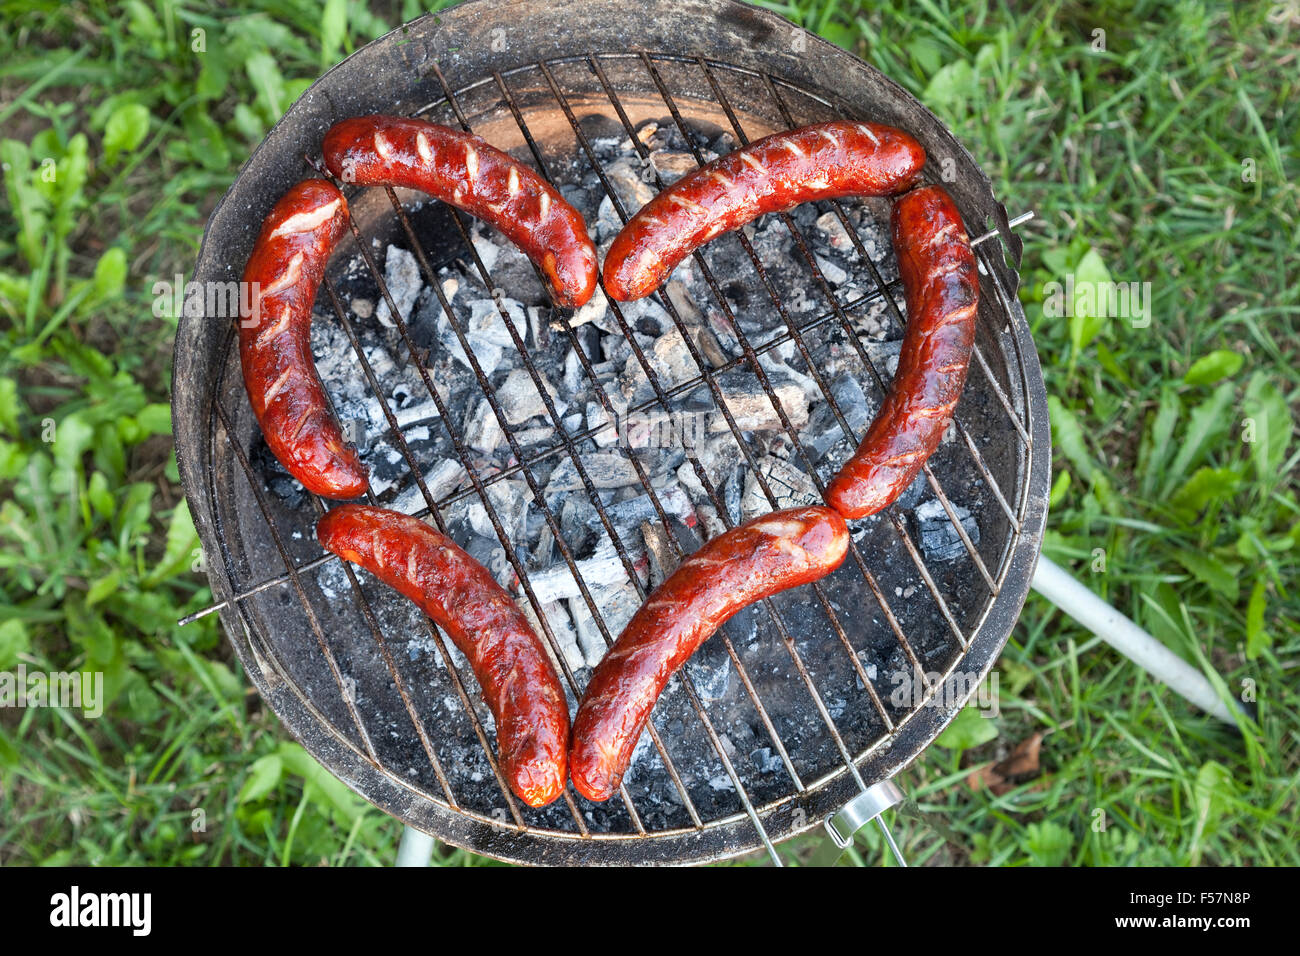 sausage on grill arranged in shape of heart - Stock Image